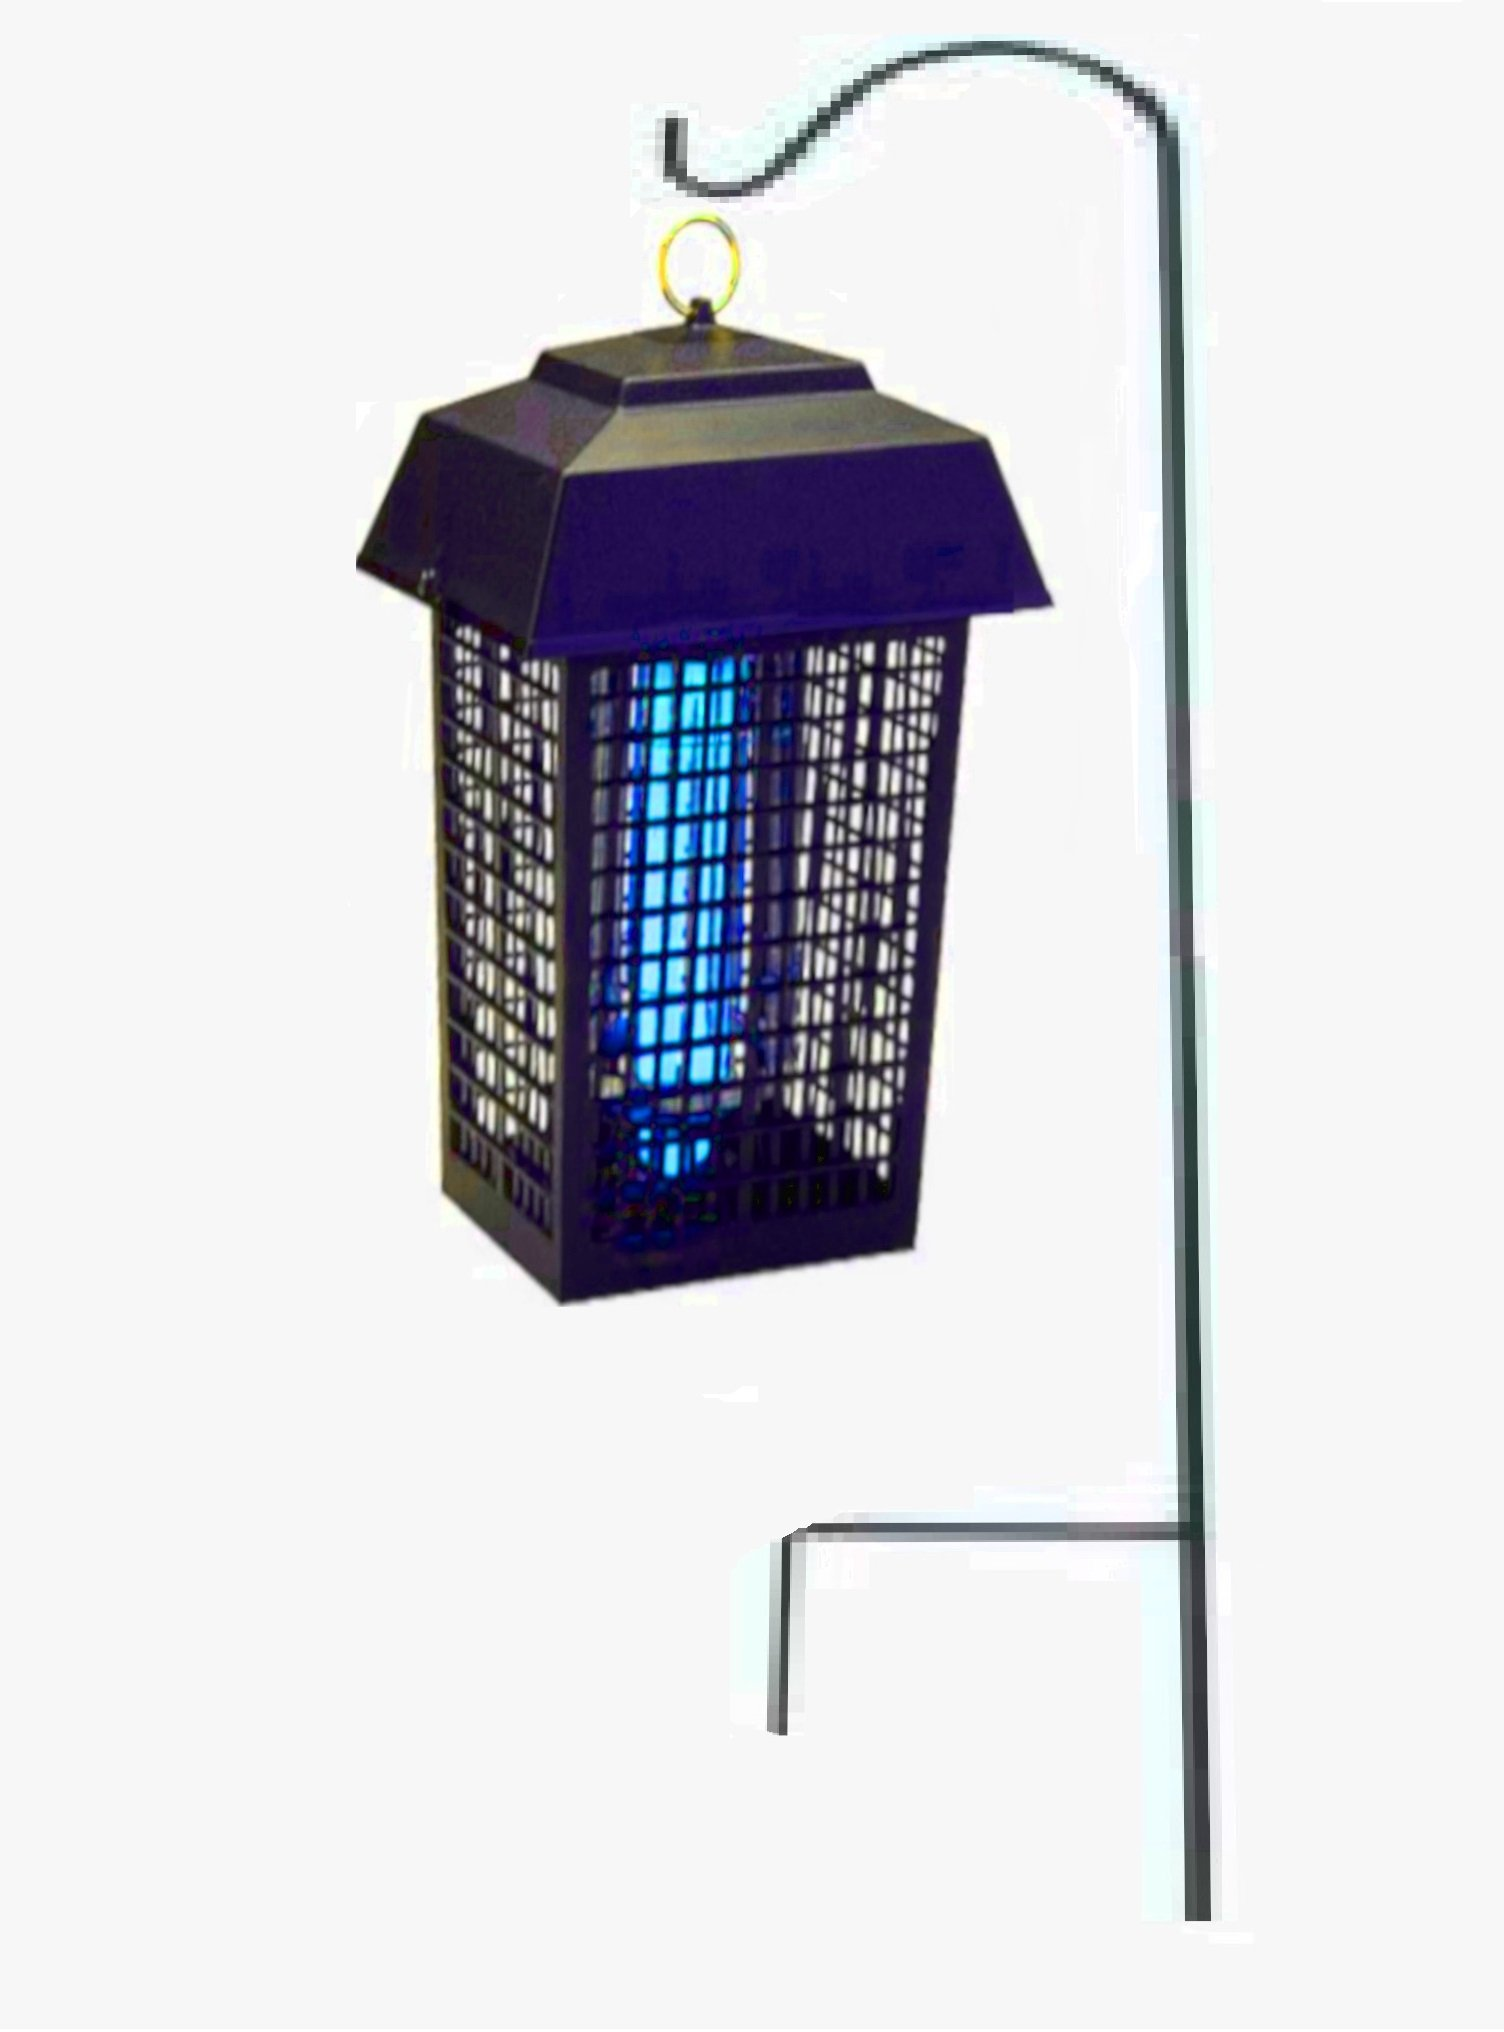 STS SUPPLIES LTD 2in1 Mosquito Killer Heavy Duty Repellent Trap UV Outdoor Electric Bulb Garden Yard Light Fly Bug Lantern & Ebook by AllTim3Shopping.